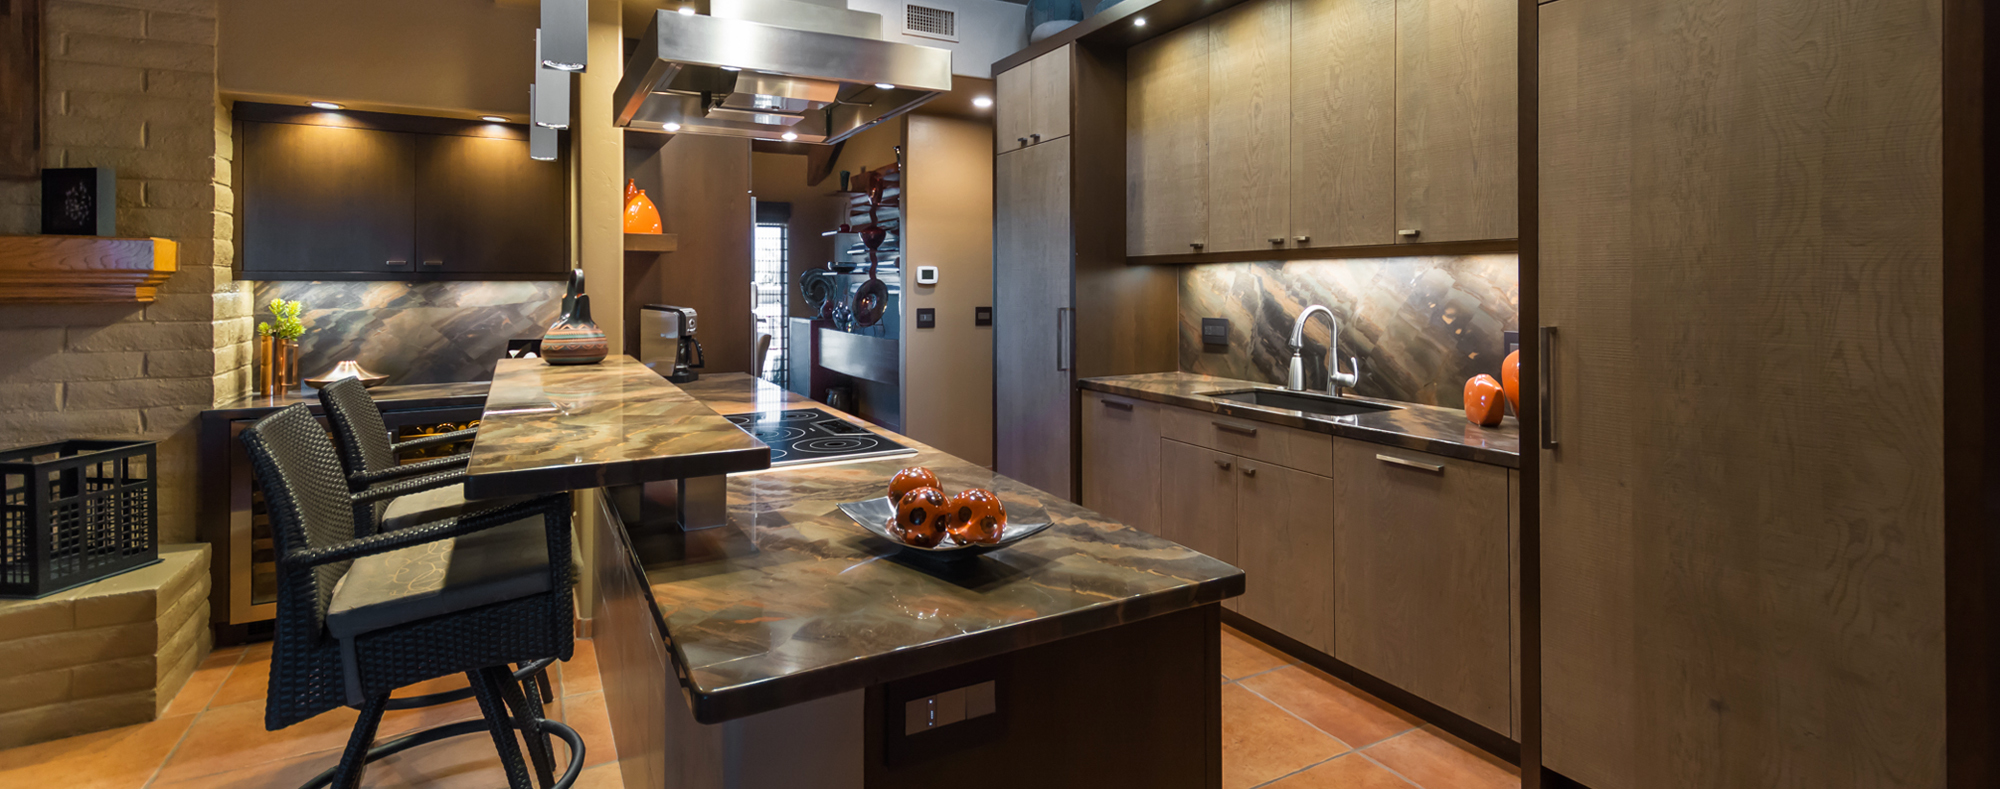 canyoncabinetry kitchen remodel tucson Canyon Cabinetry Design is one of Tucson s most respected kitchen and bath remodelers We offer many fine lines of cabinetry